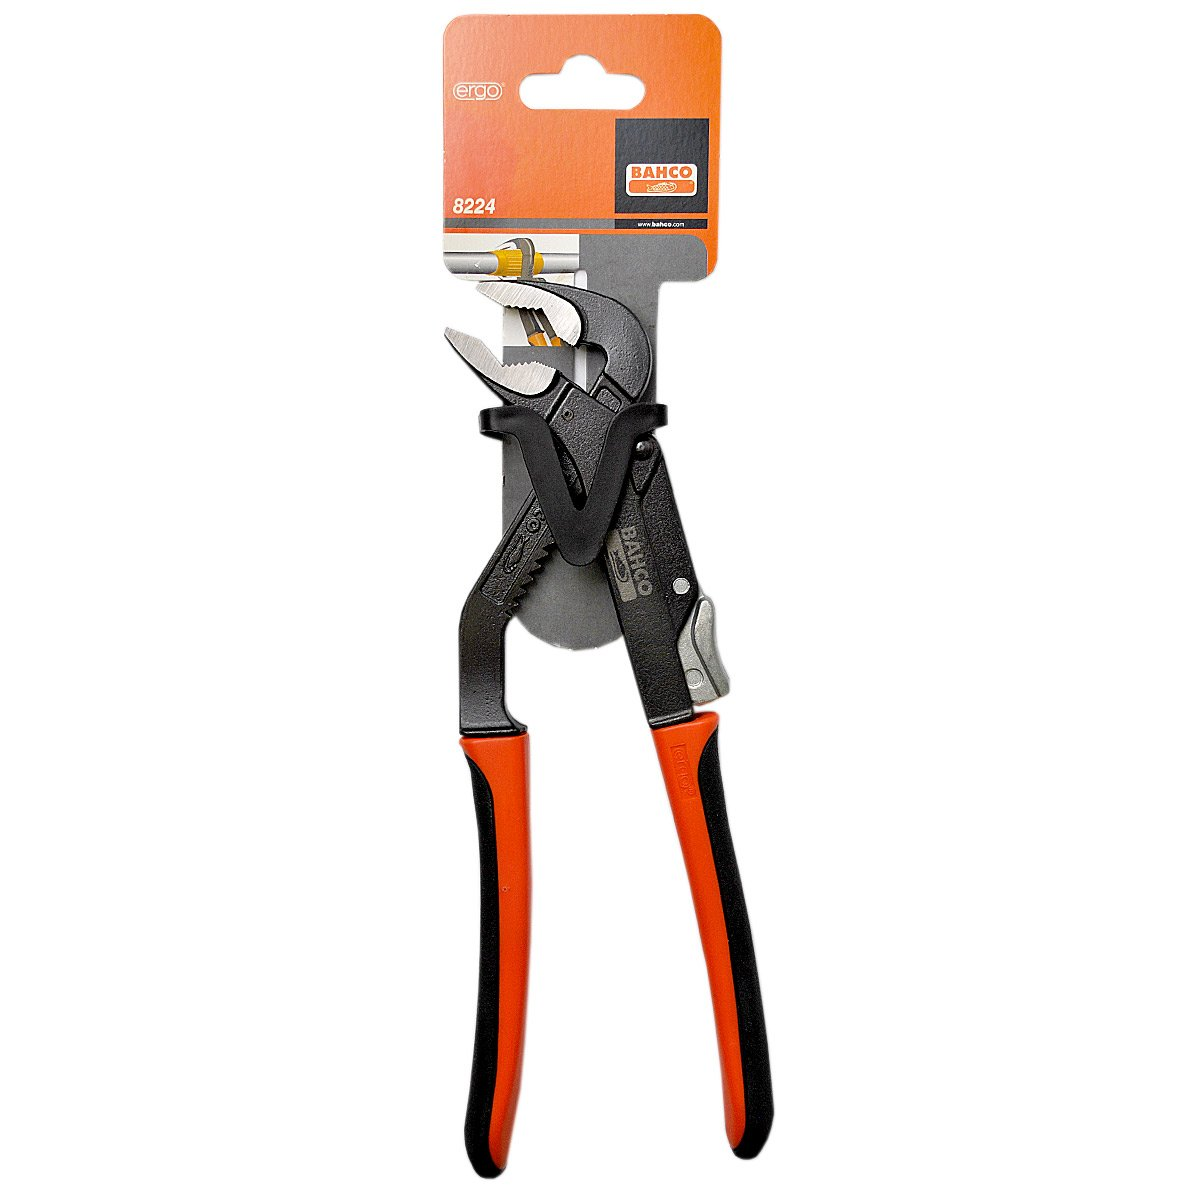 BAHCO 8224 Adjustable Joint Pliers 10-Inch